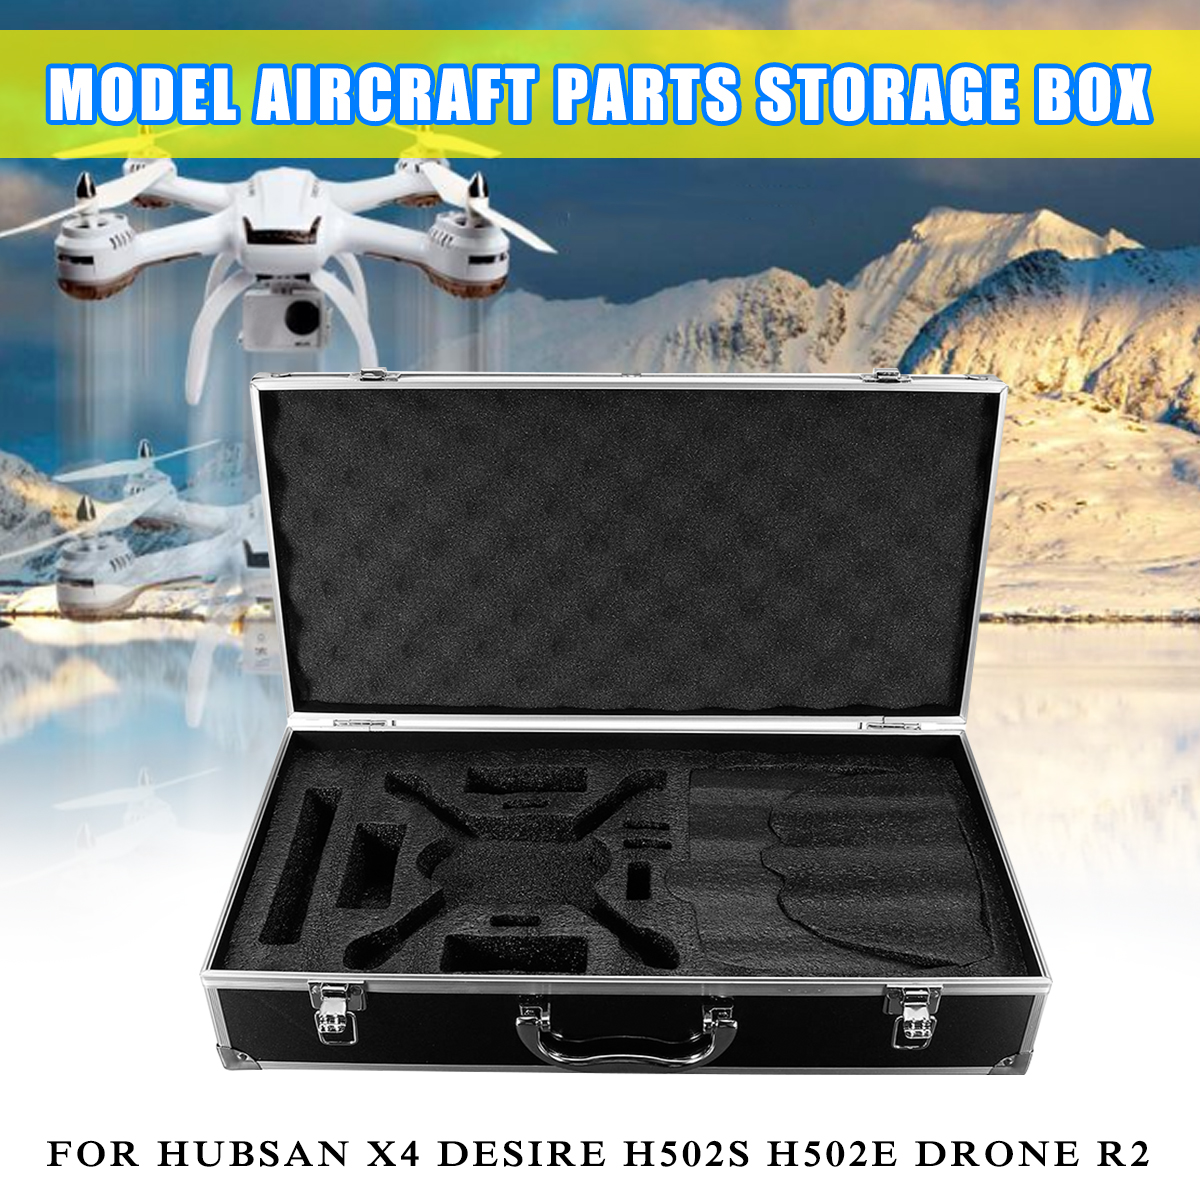 Hardshell Suitcase Carrying Case Box Waterproof Drone Bag For Hubsan X4 Desire H502S H502E Drone R2 PartHardshell Suitcase Carrying Case Box Waterproof Drone Bag For Hubsan X4 Desire H502S H502E Drone R2 Part